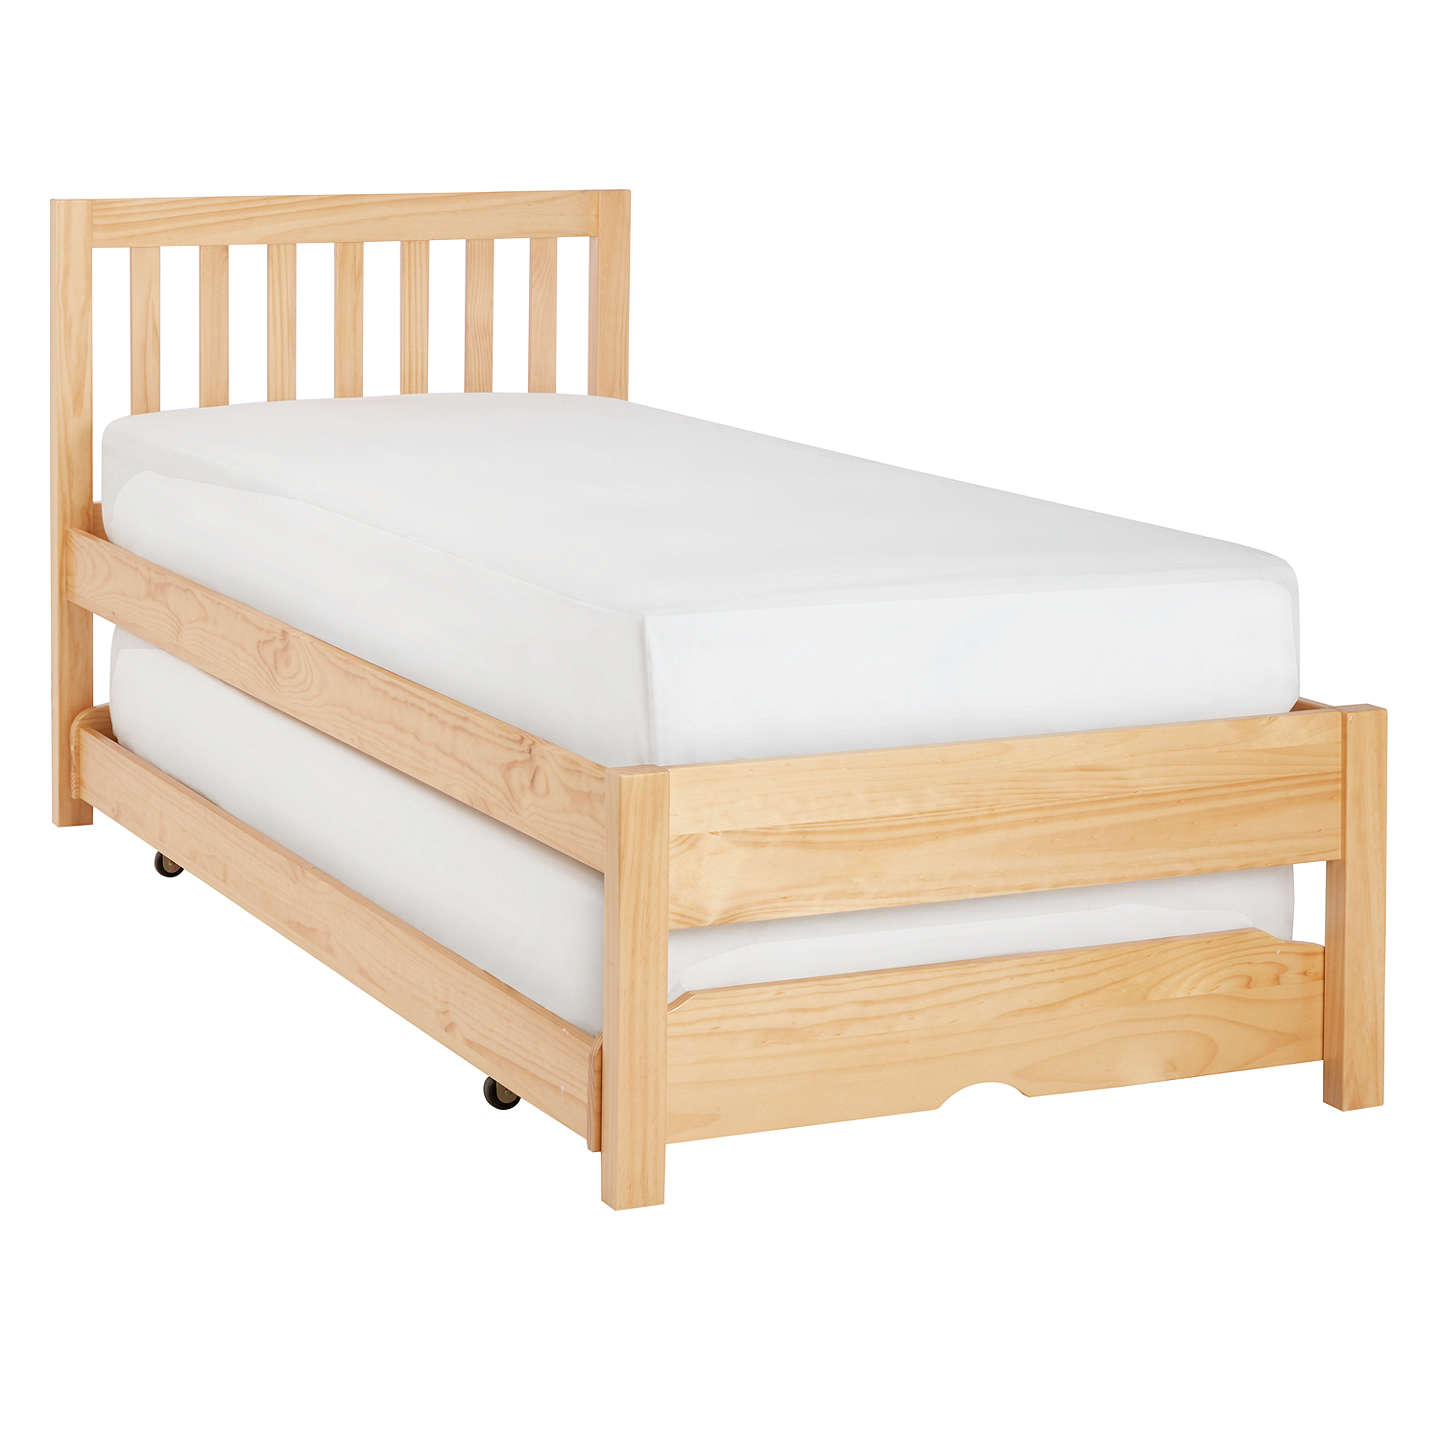 mattresses pdp with buyjohn main spring natural single bed at john trundle guest lewis online rsp wilton open